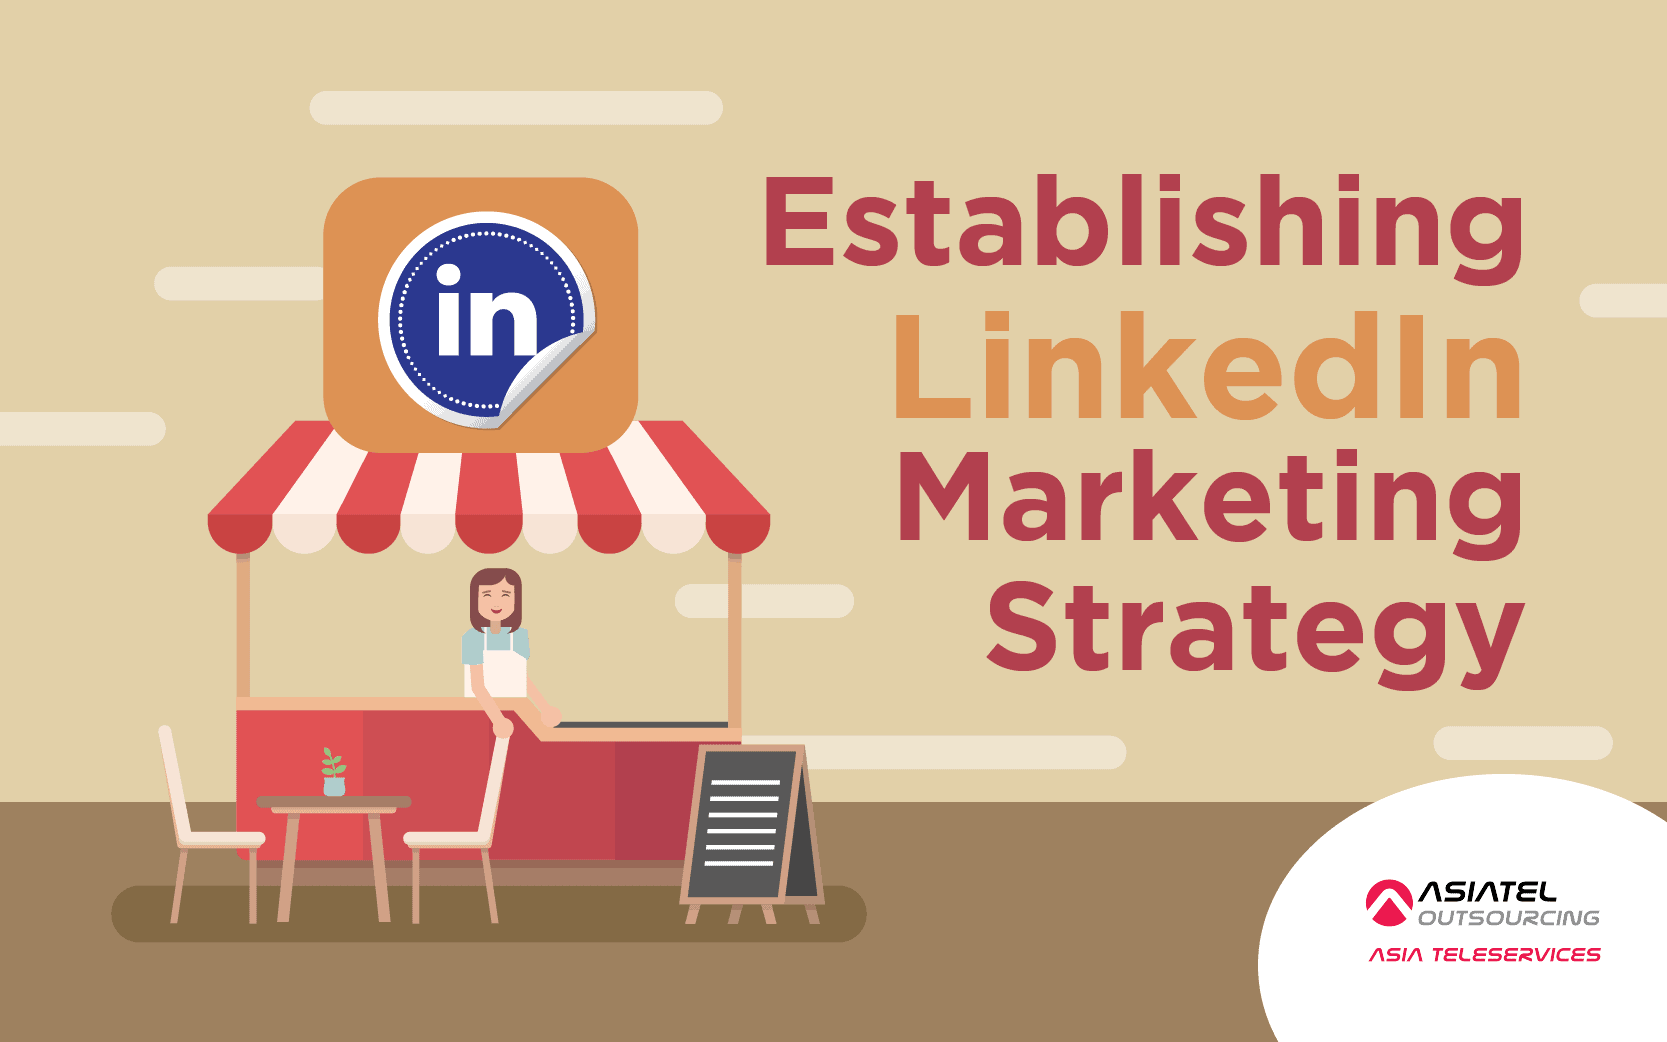 Establishing LinkedIn Marketing Strategy